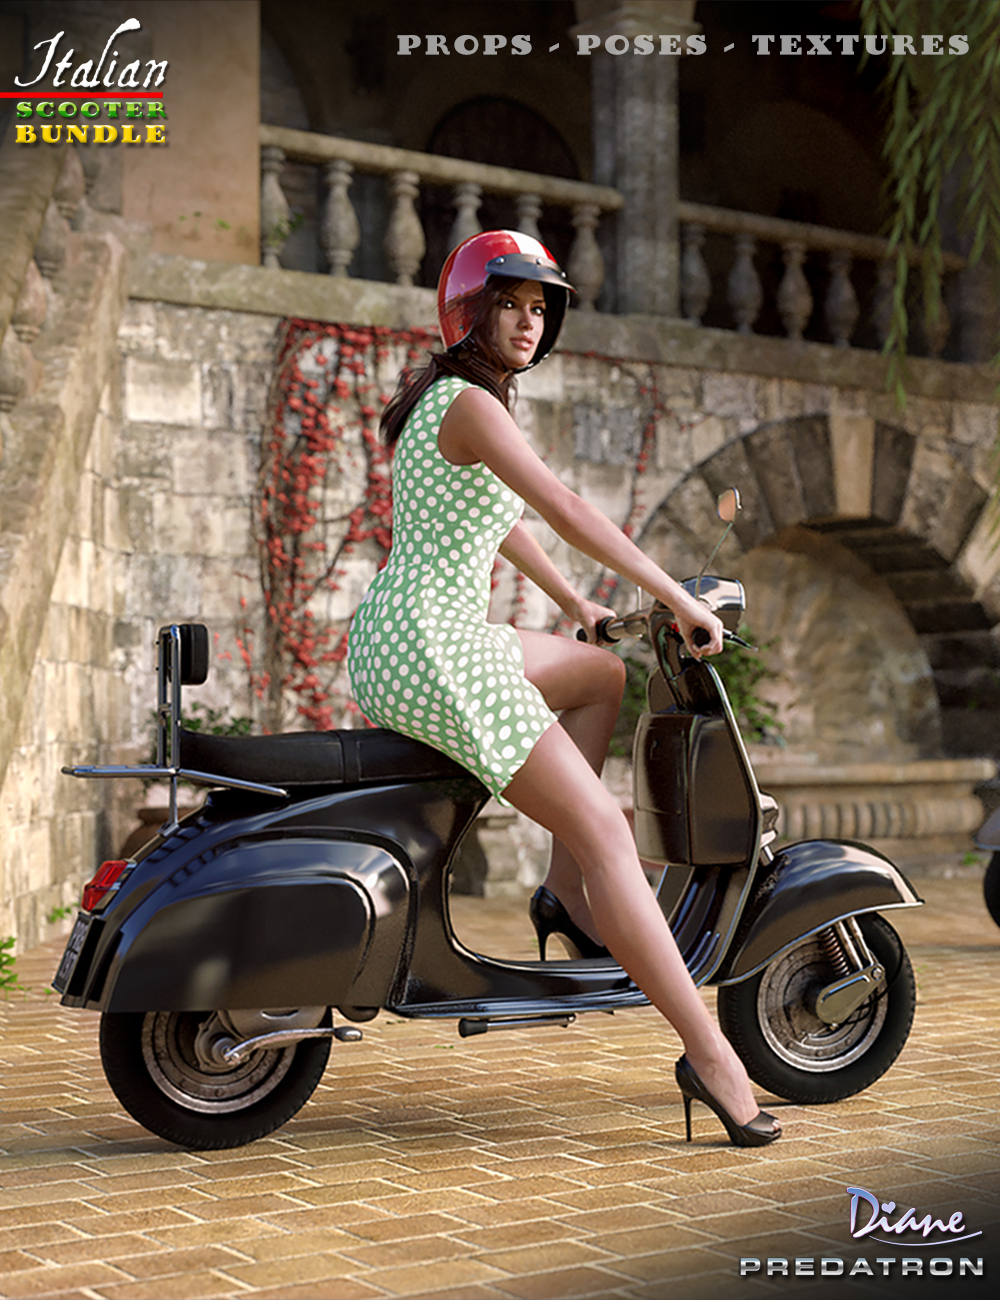 Italian Scooter Bundle by: PredatronDiane, 3D Models by Daz 3D